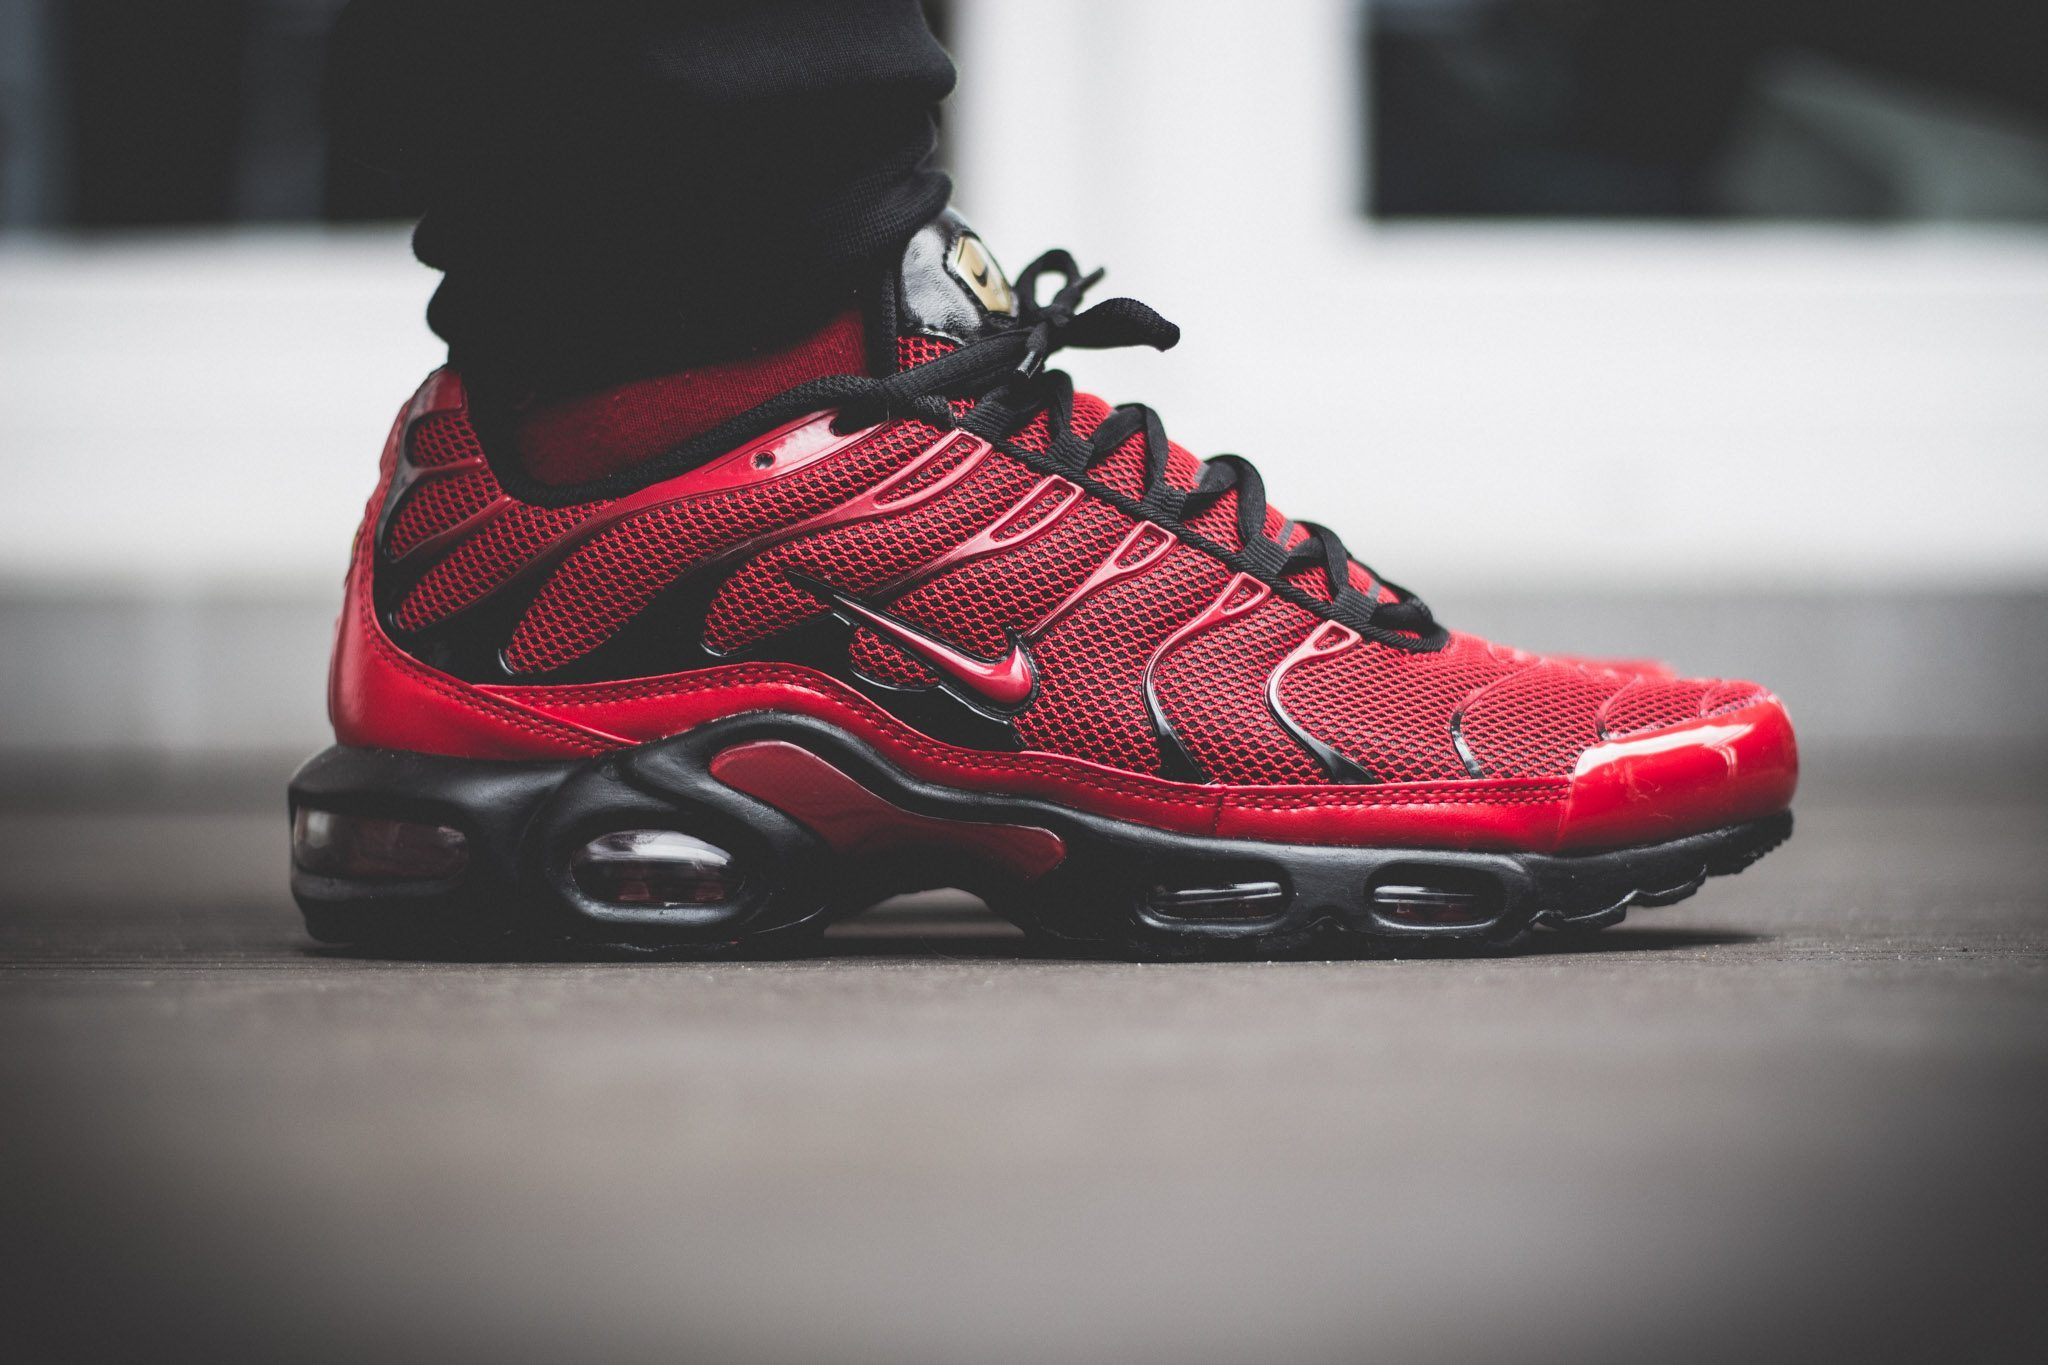 46ce2061ea46 ᐅ Nike Tuned 1 – Red On Feet